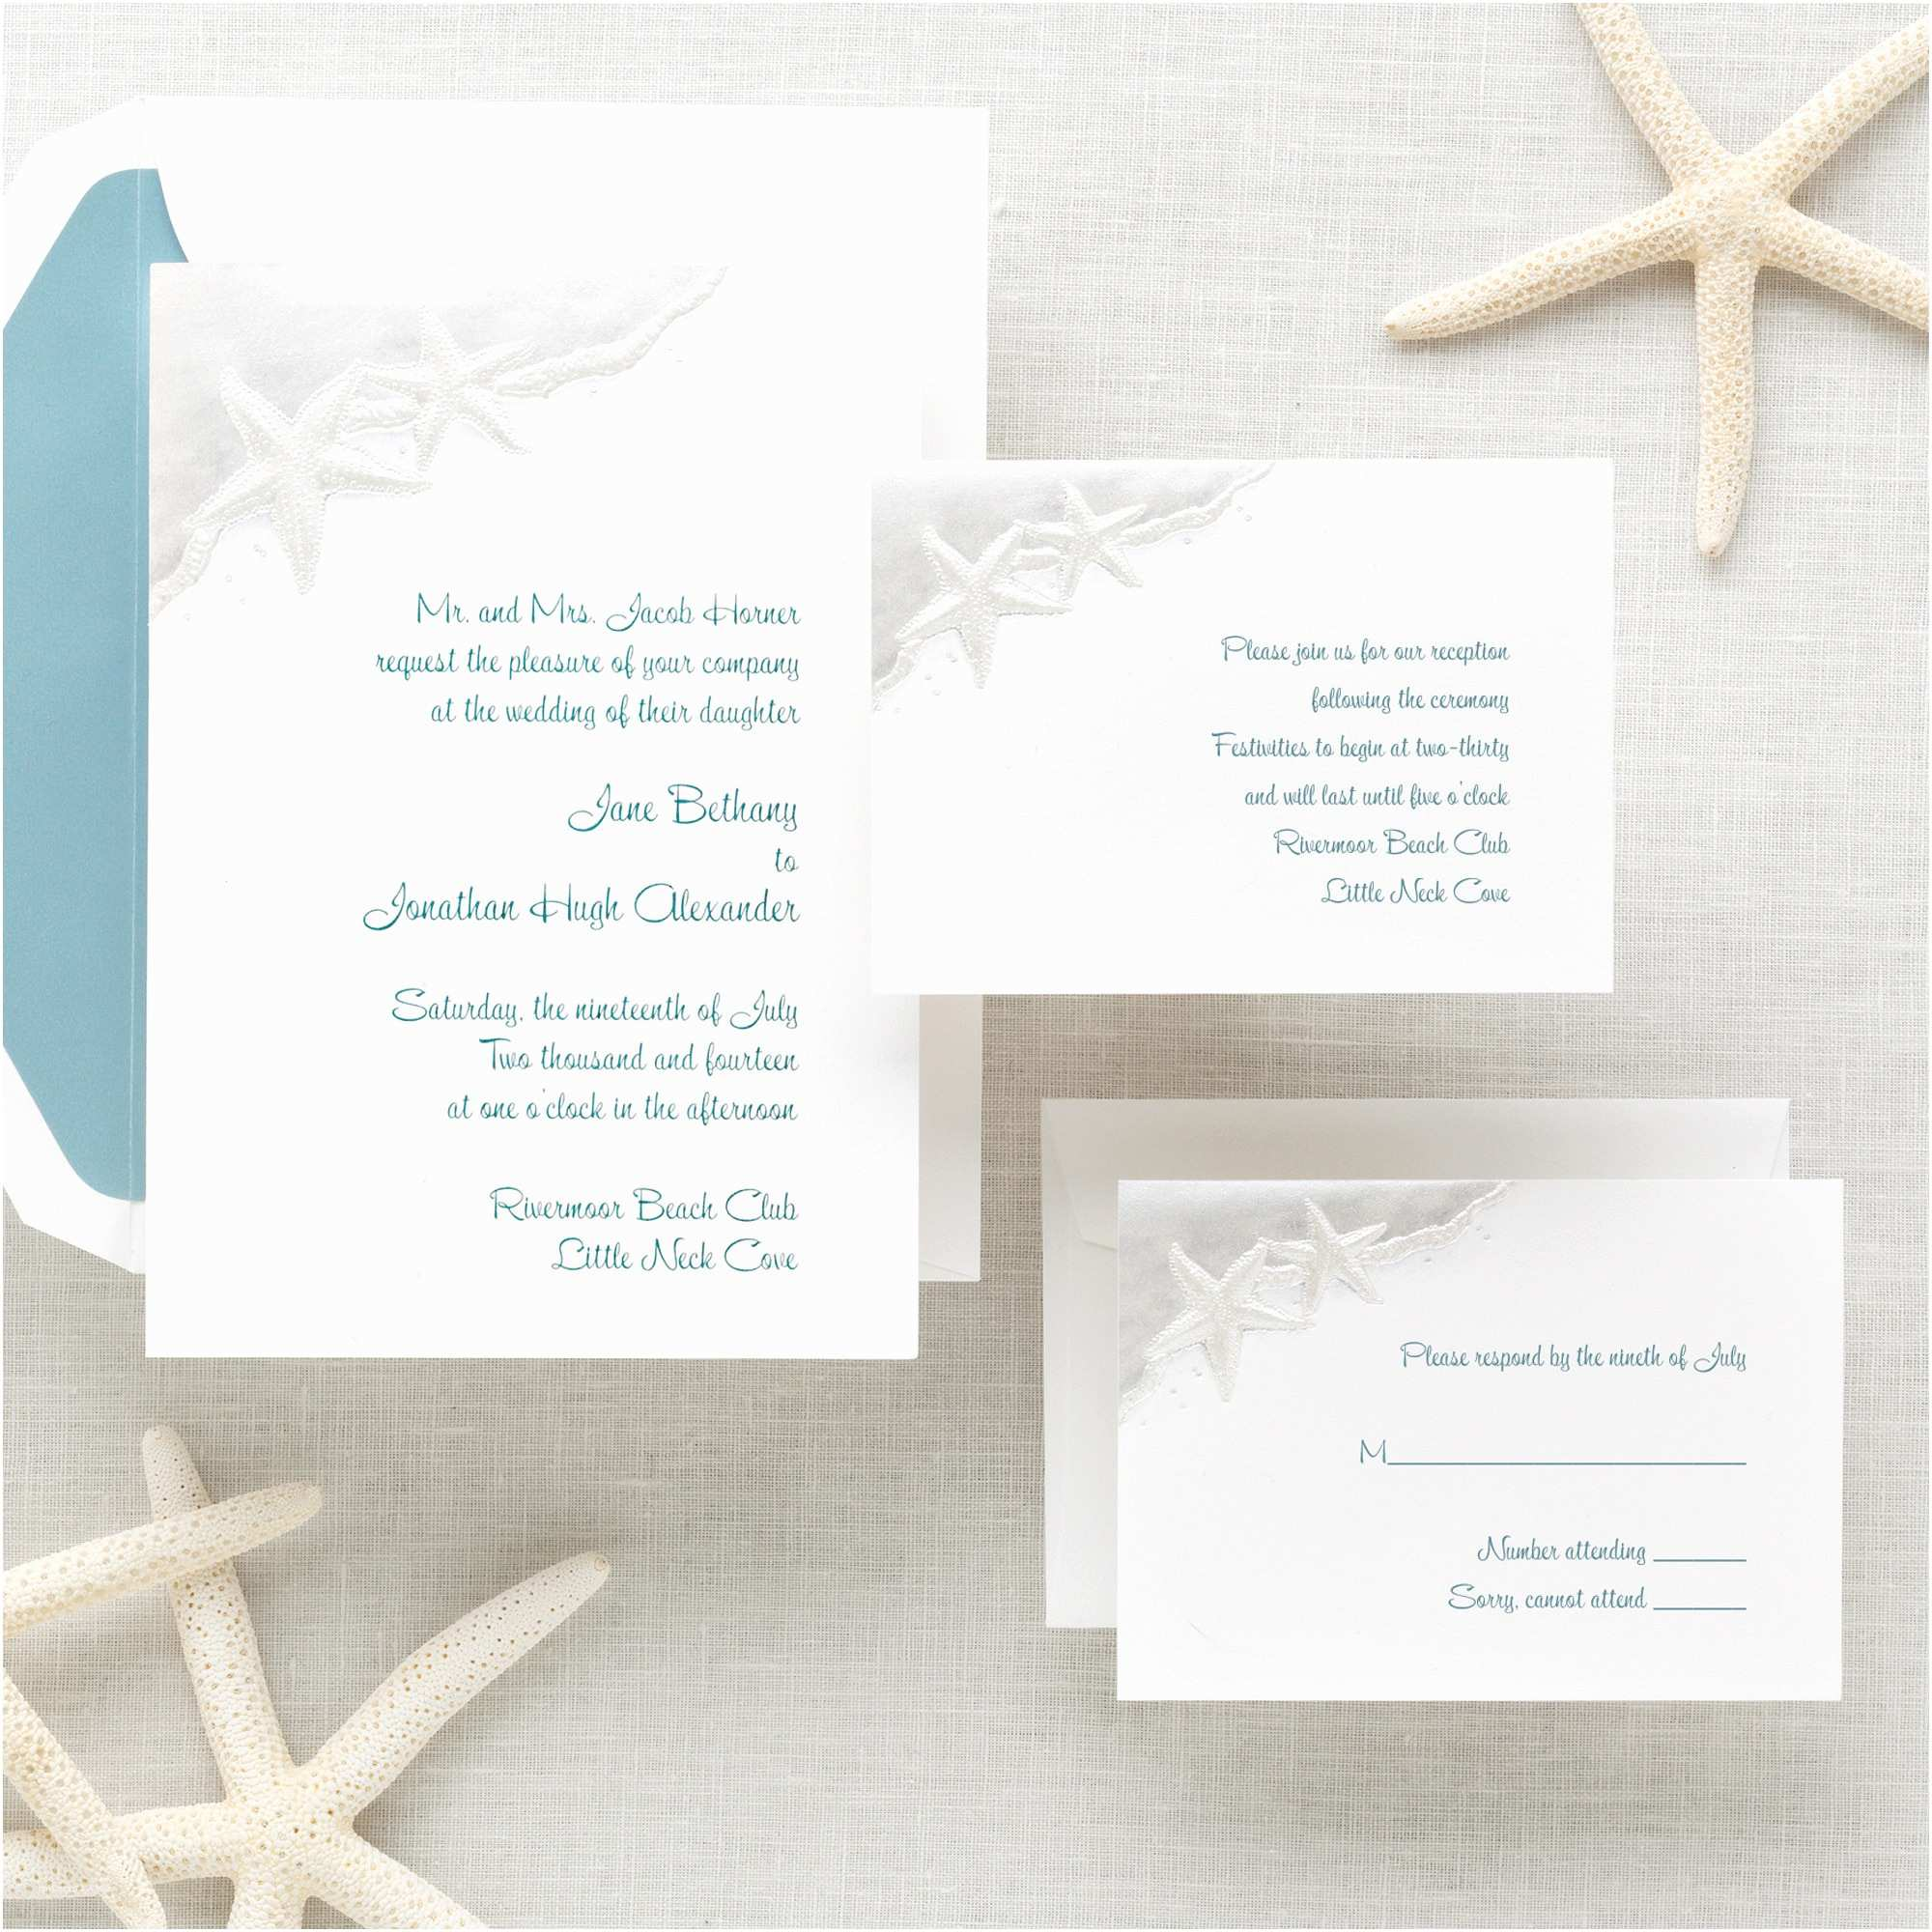 Cheap Engagement Party Invitations 40 Unique Wedding Invitations Beach theme Wedding Idea